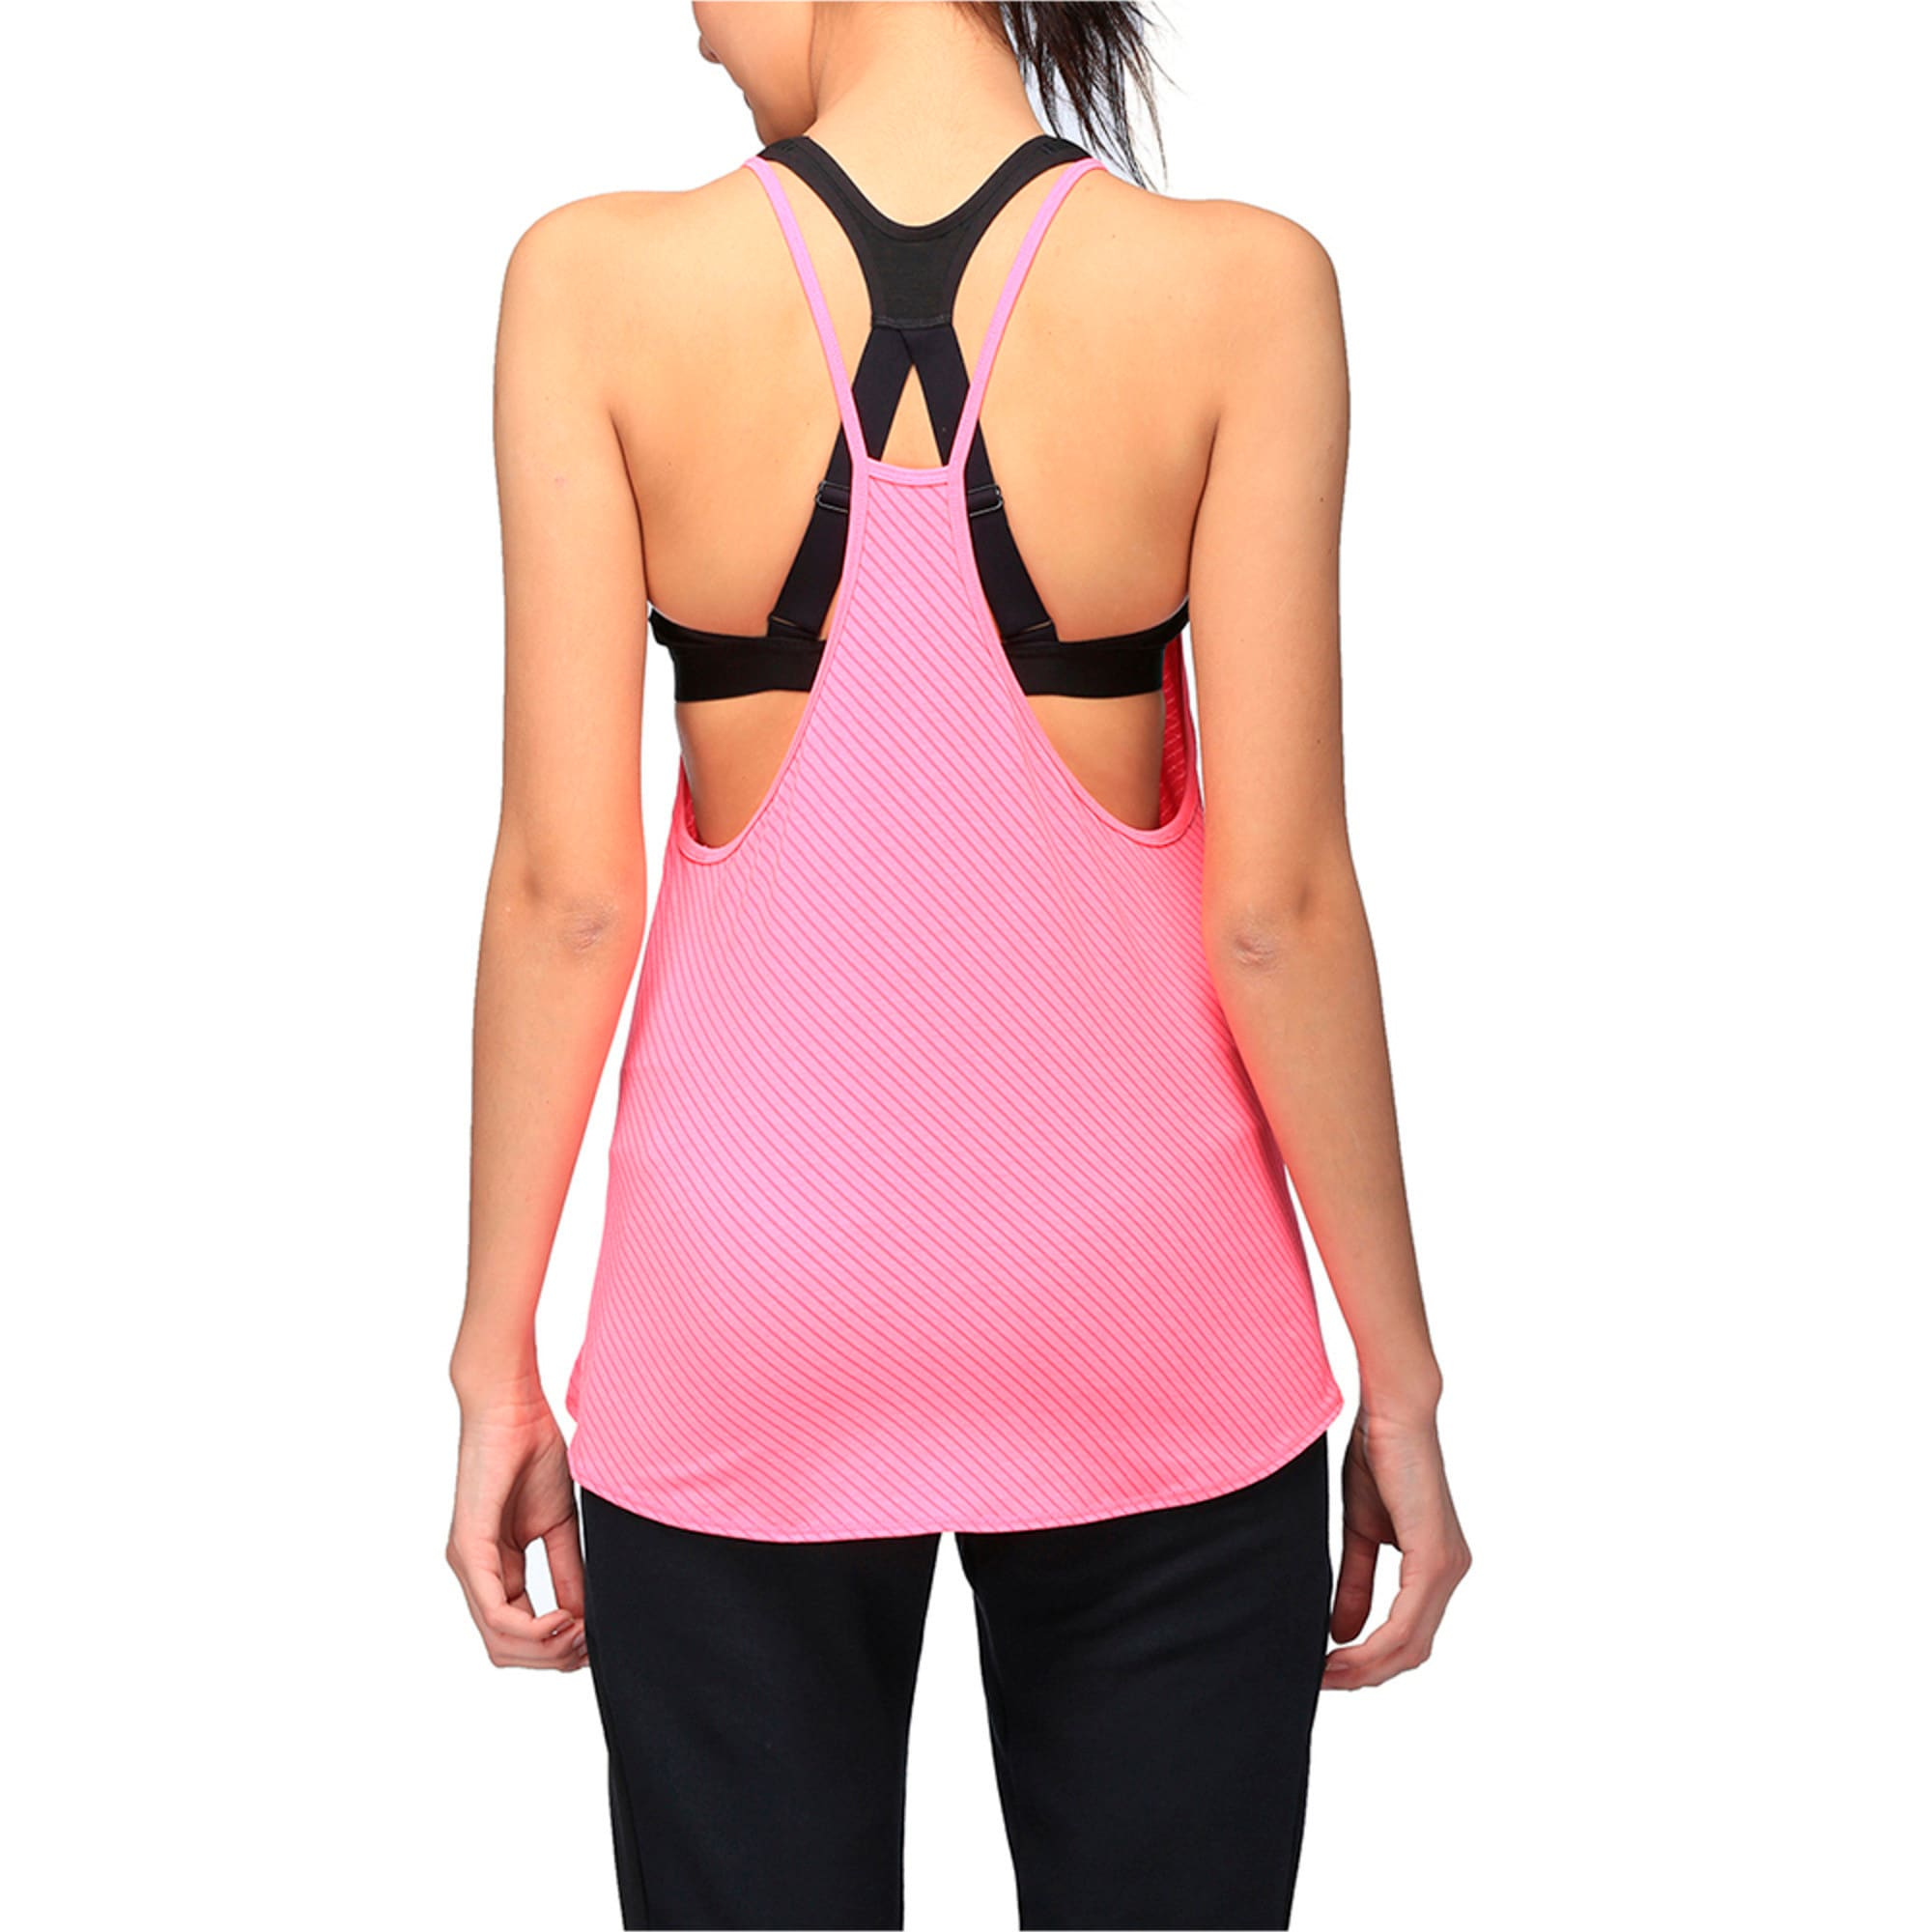 Thumbnail 2 of Active Training Women's Dancer Draped Tank Top, knockout pink heather-stripe, medium-IND